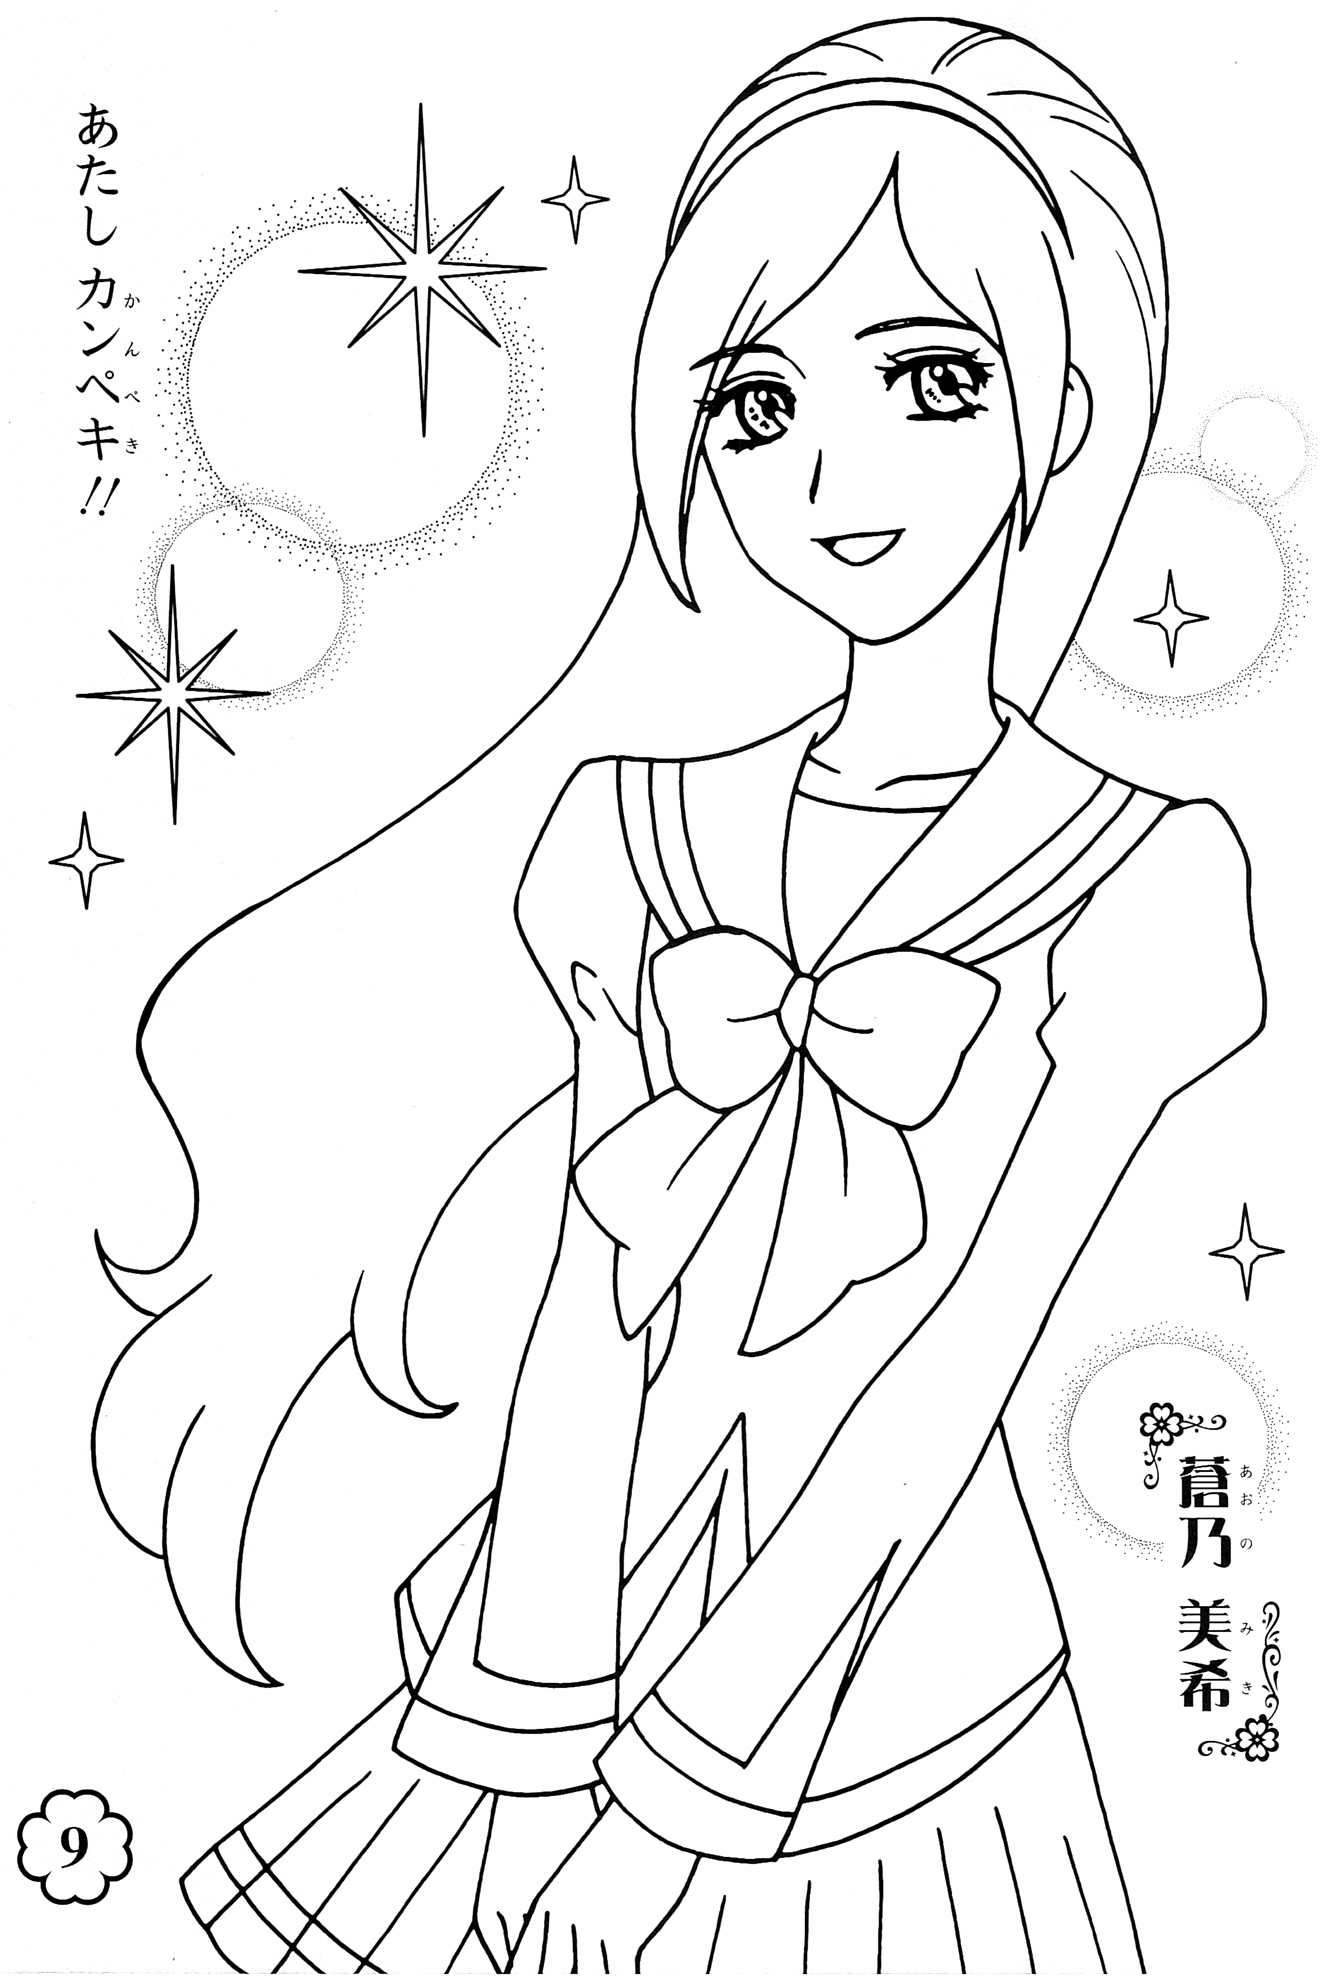 Pretty Little Liars Coloring Pages To Color Coloring Pages Pretty Coloring Pages